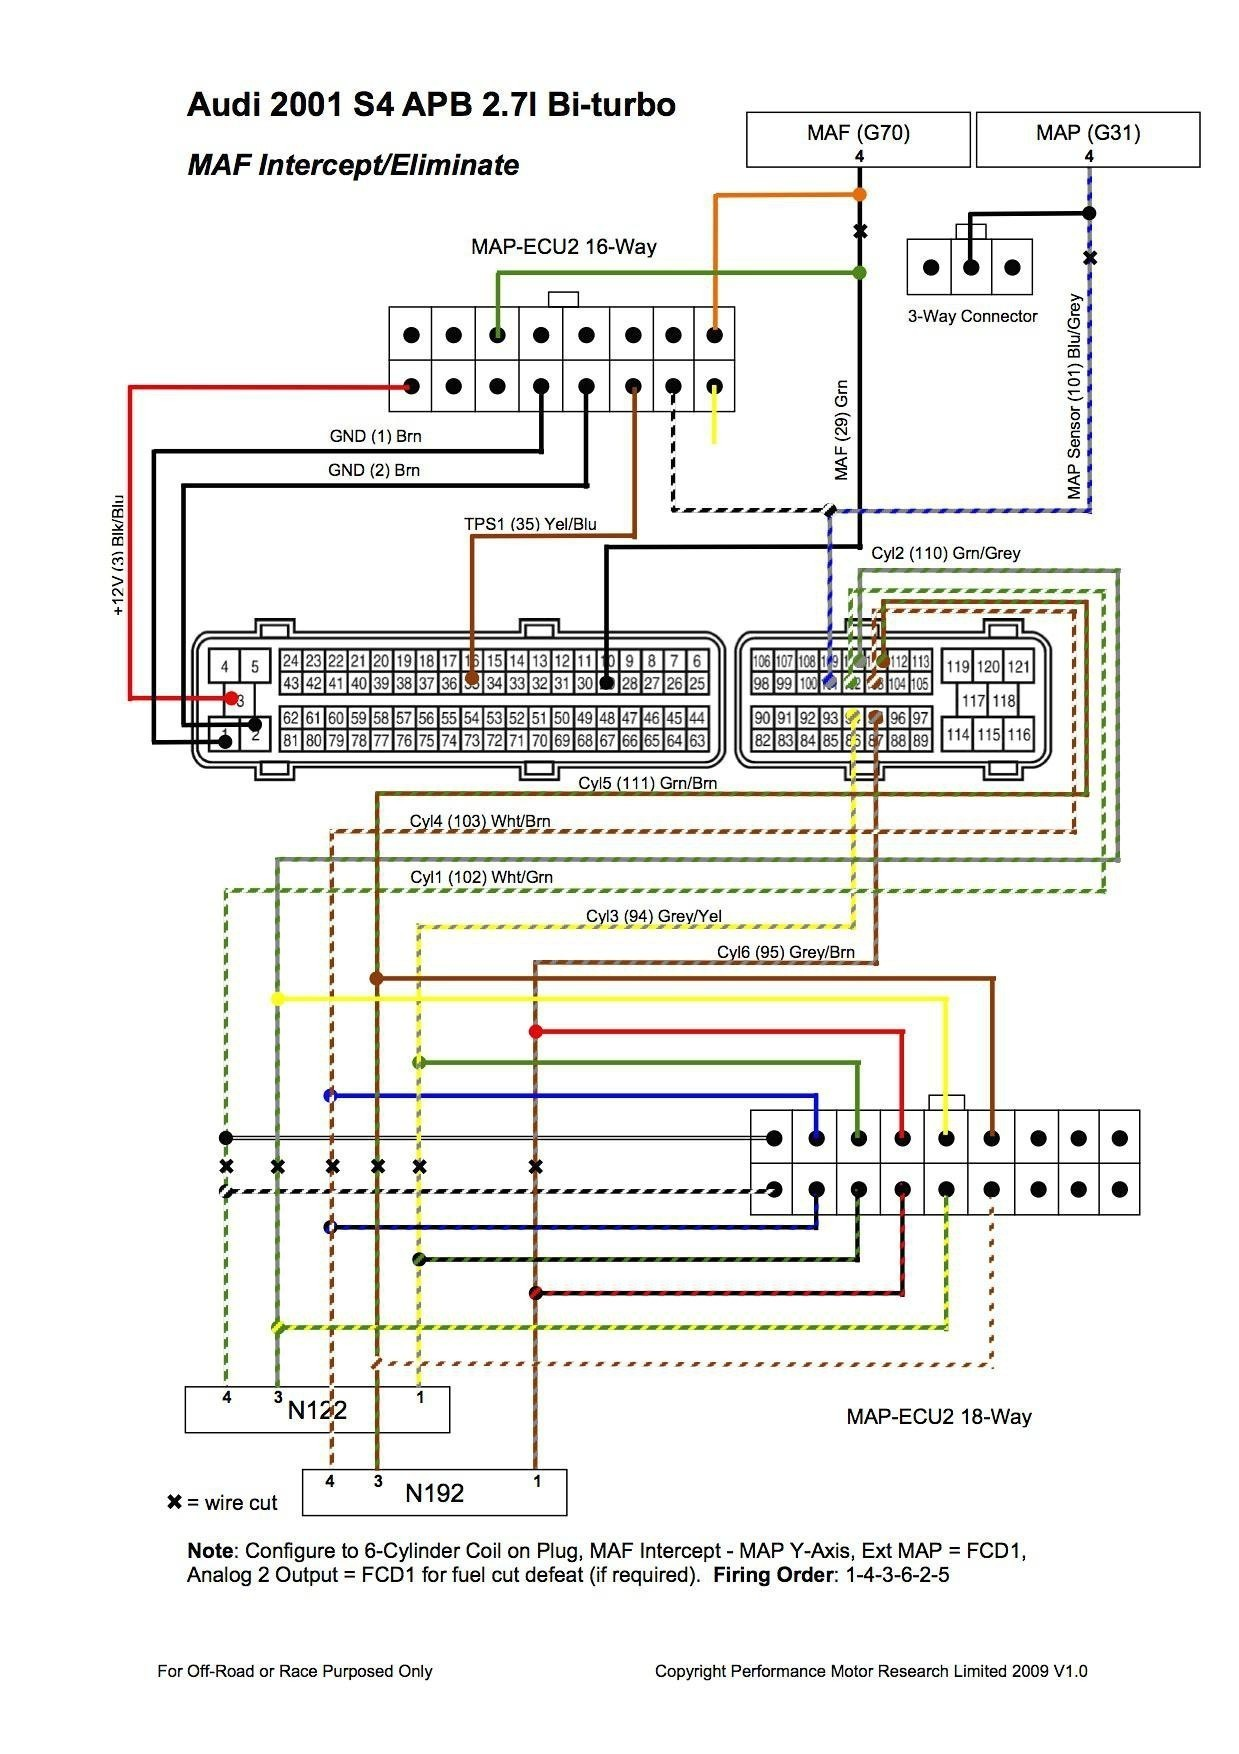 1996 dodge grand caravan wiring diagram trusted wiring diagrams \u2022 94 dodge  caravan wiring diagram